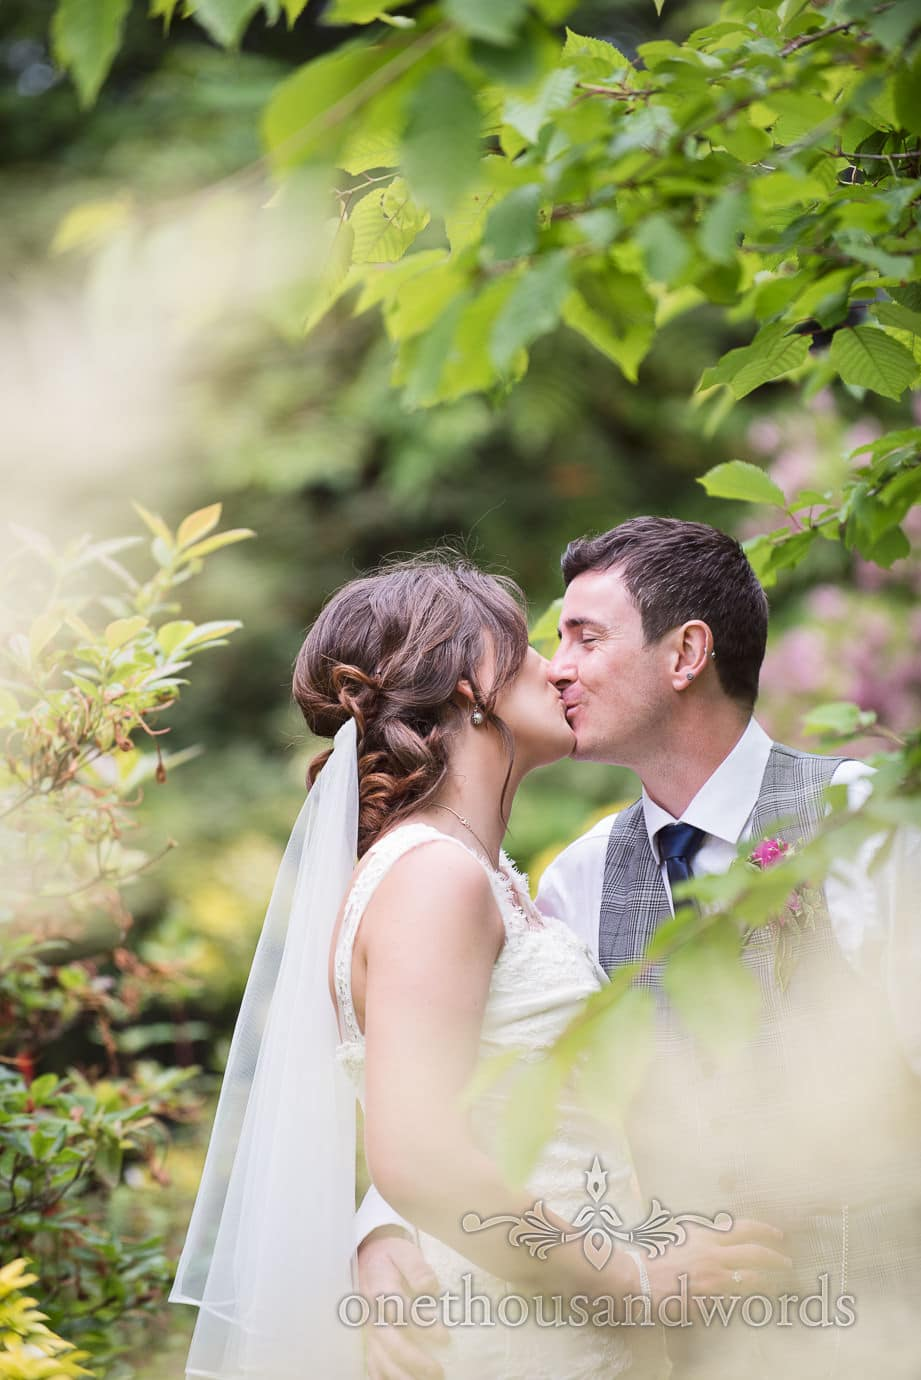 Bride and groom kiss in gardens at The Old Vicarage Wedding venue in New Forest